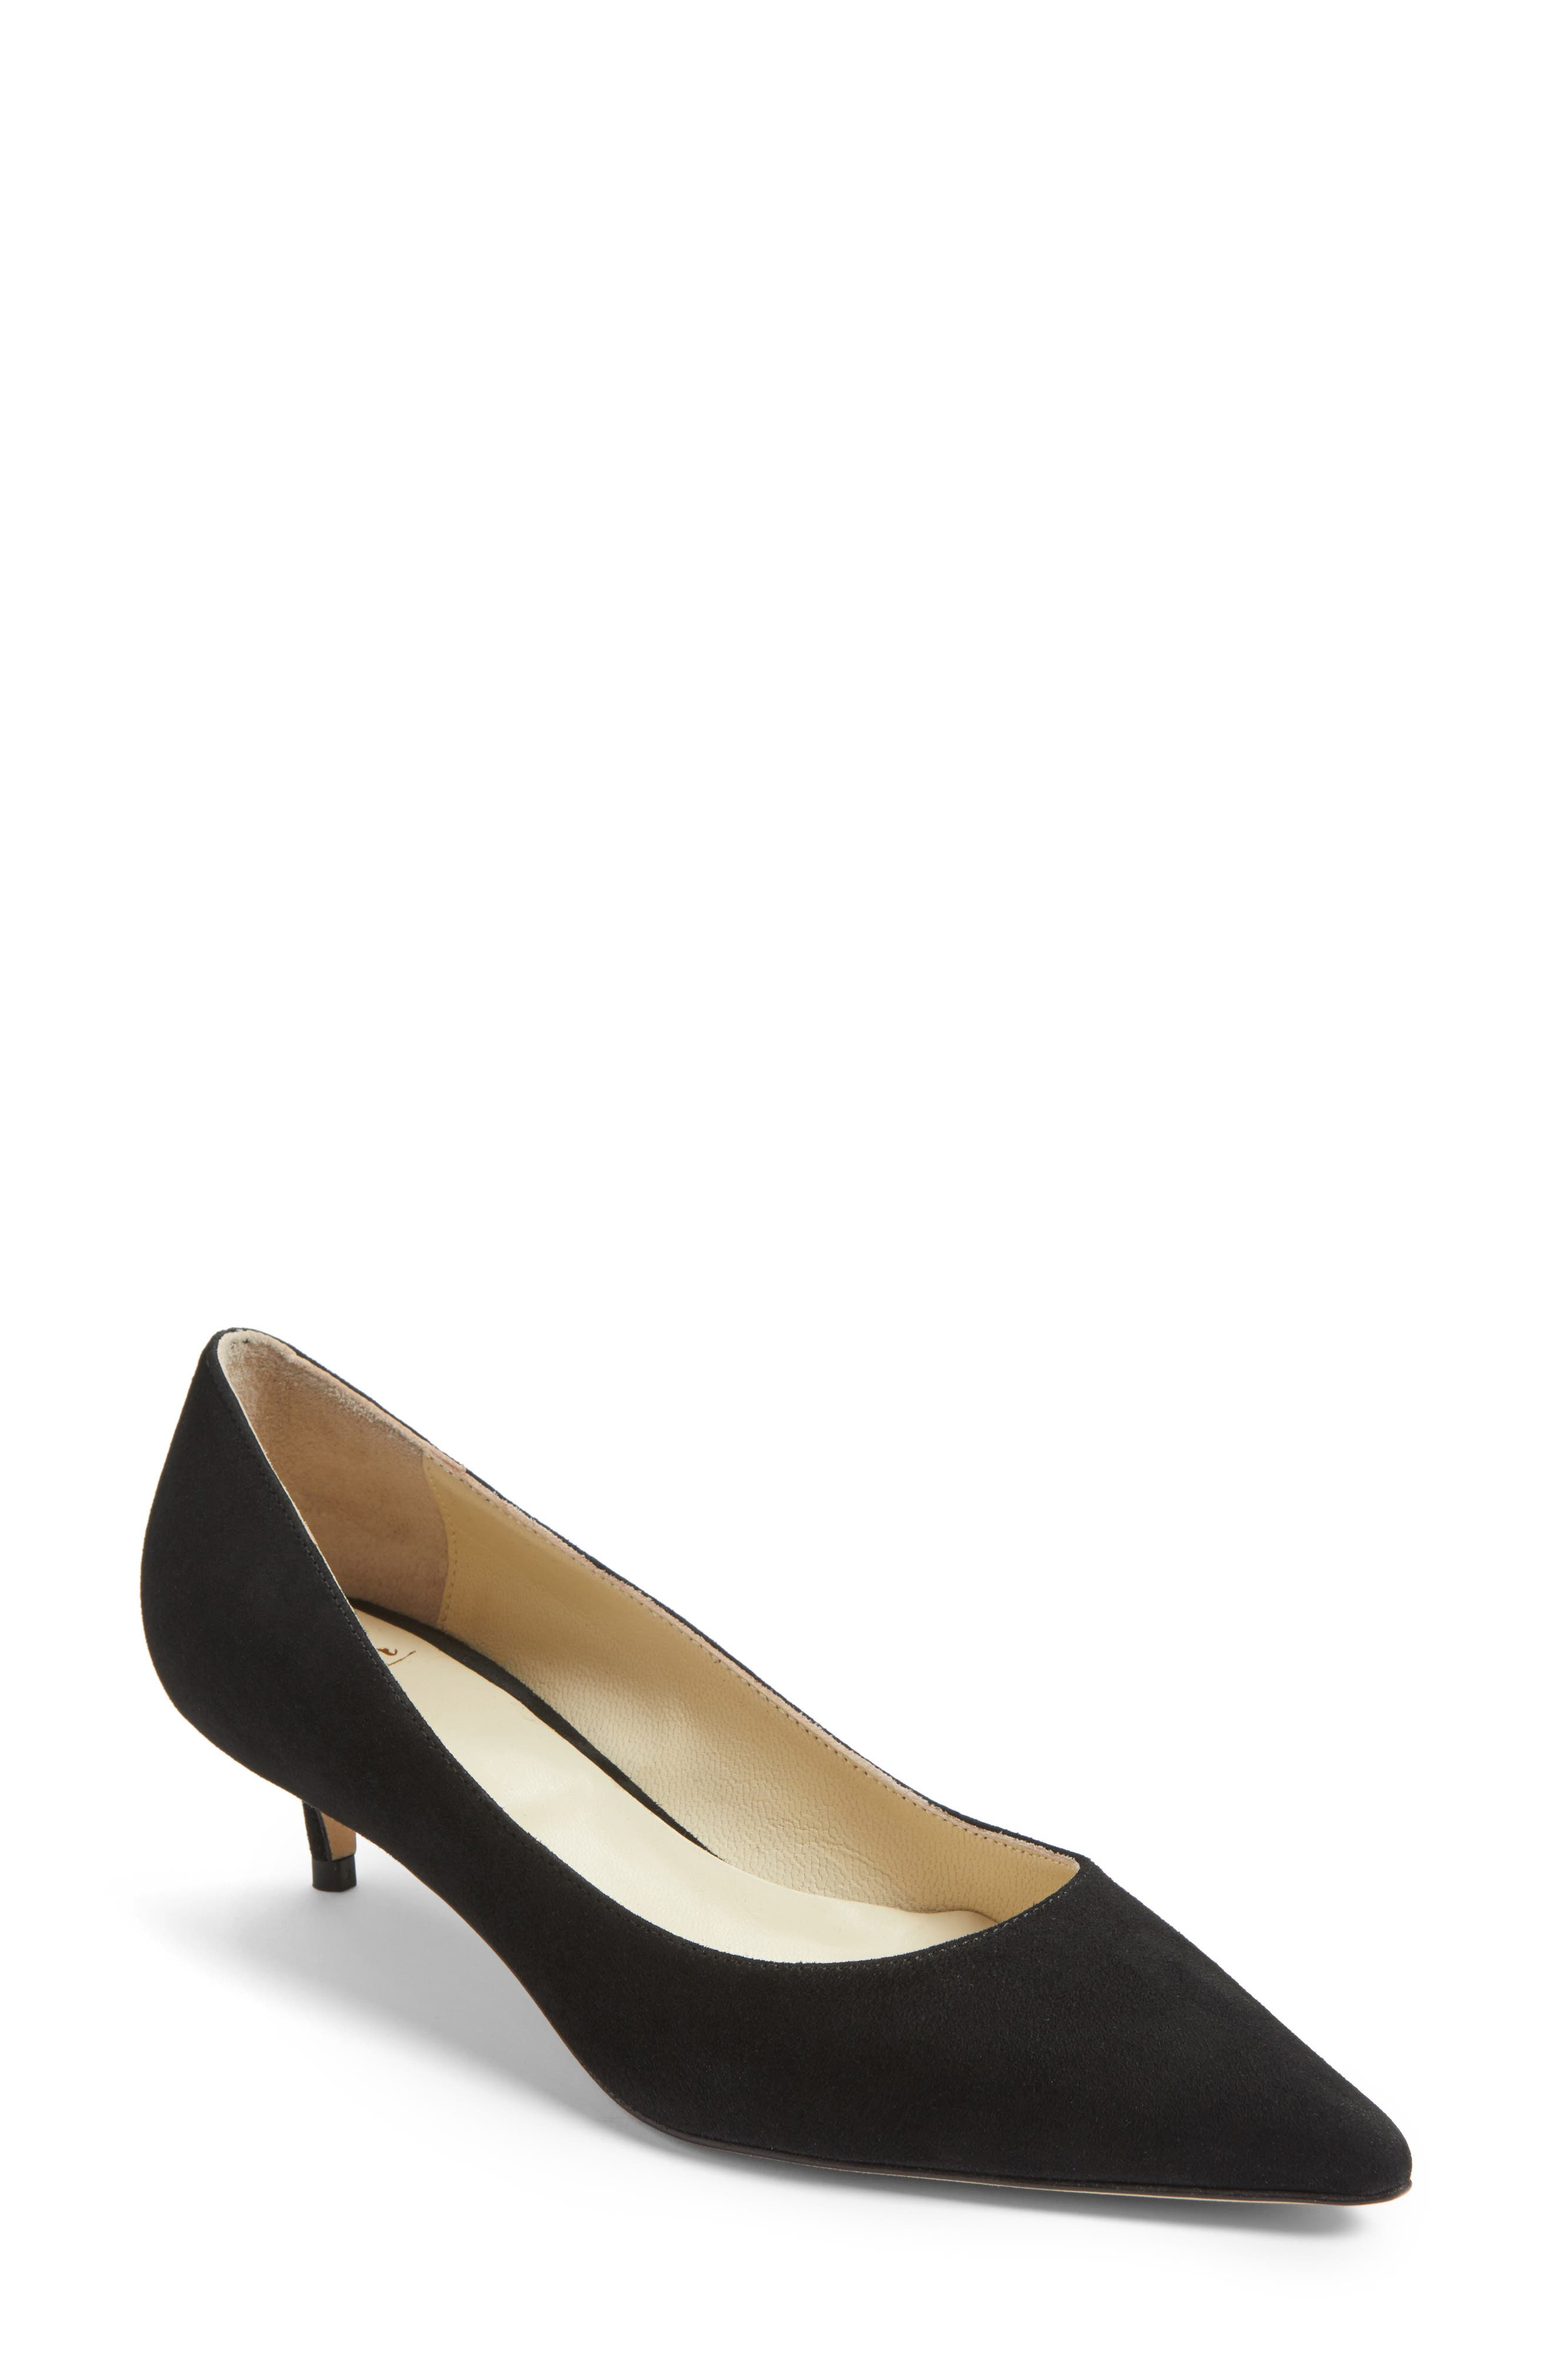 BUTTER SHOES Butter Born Pointy Toe Pump, Main, color, 001